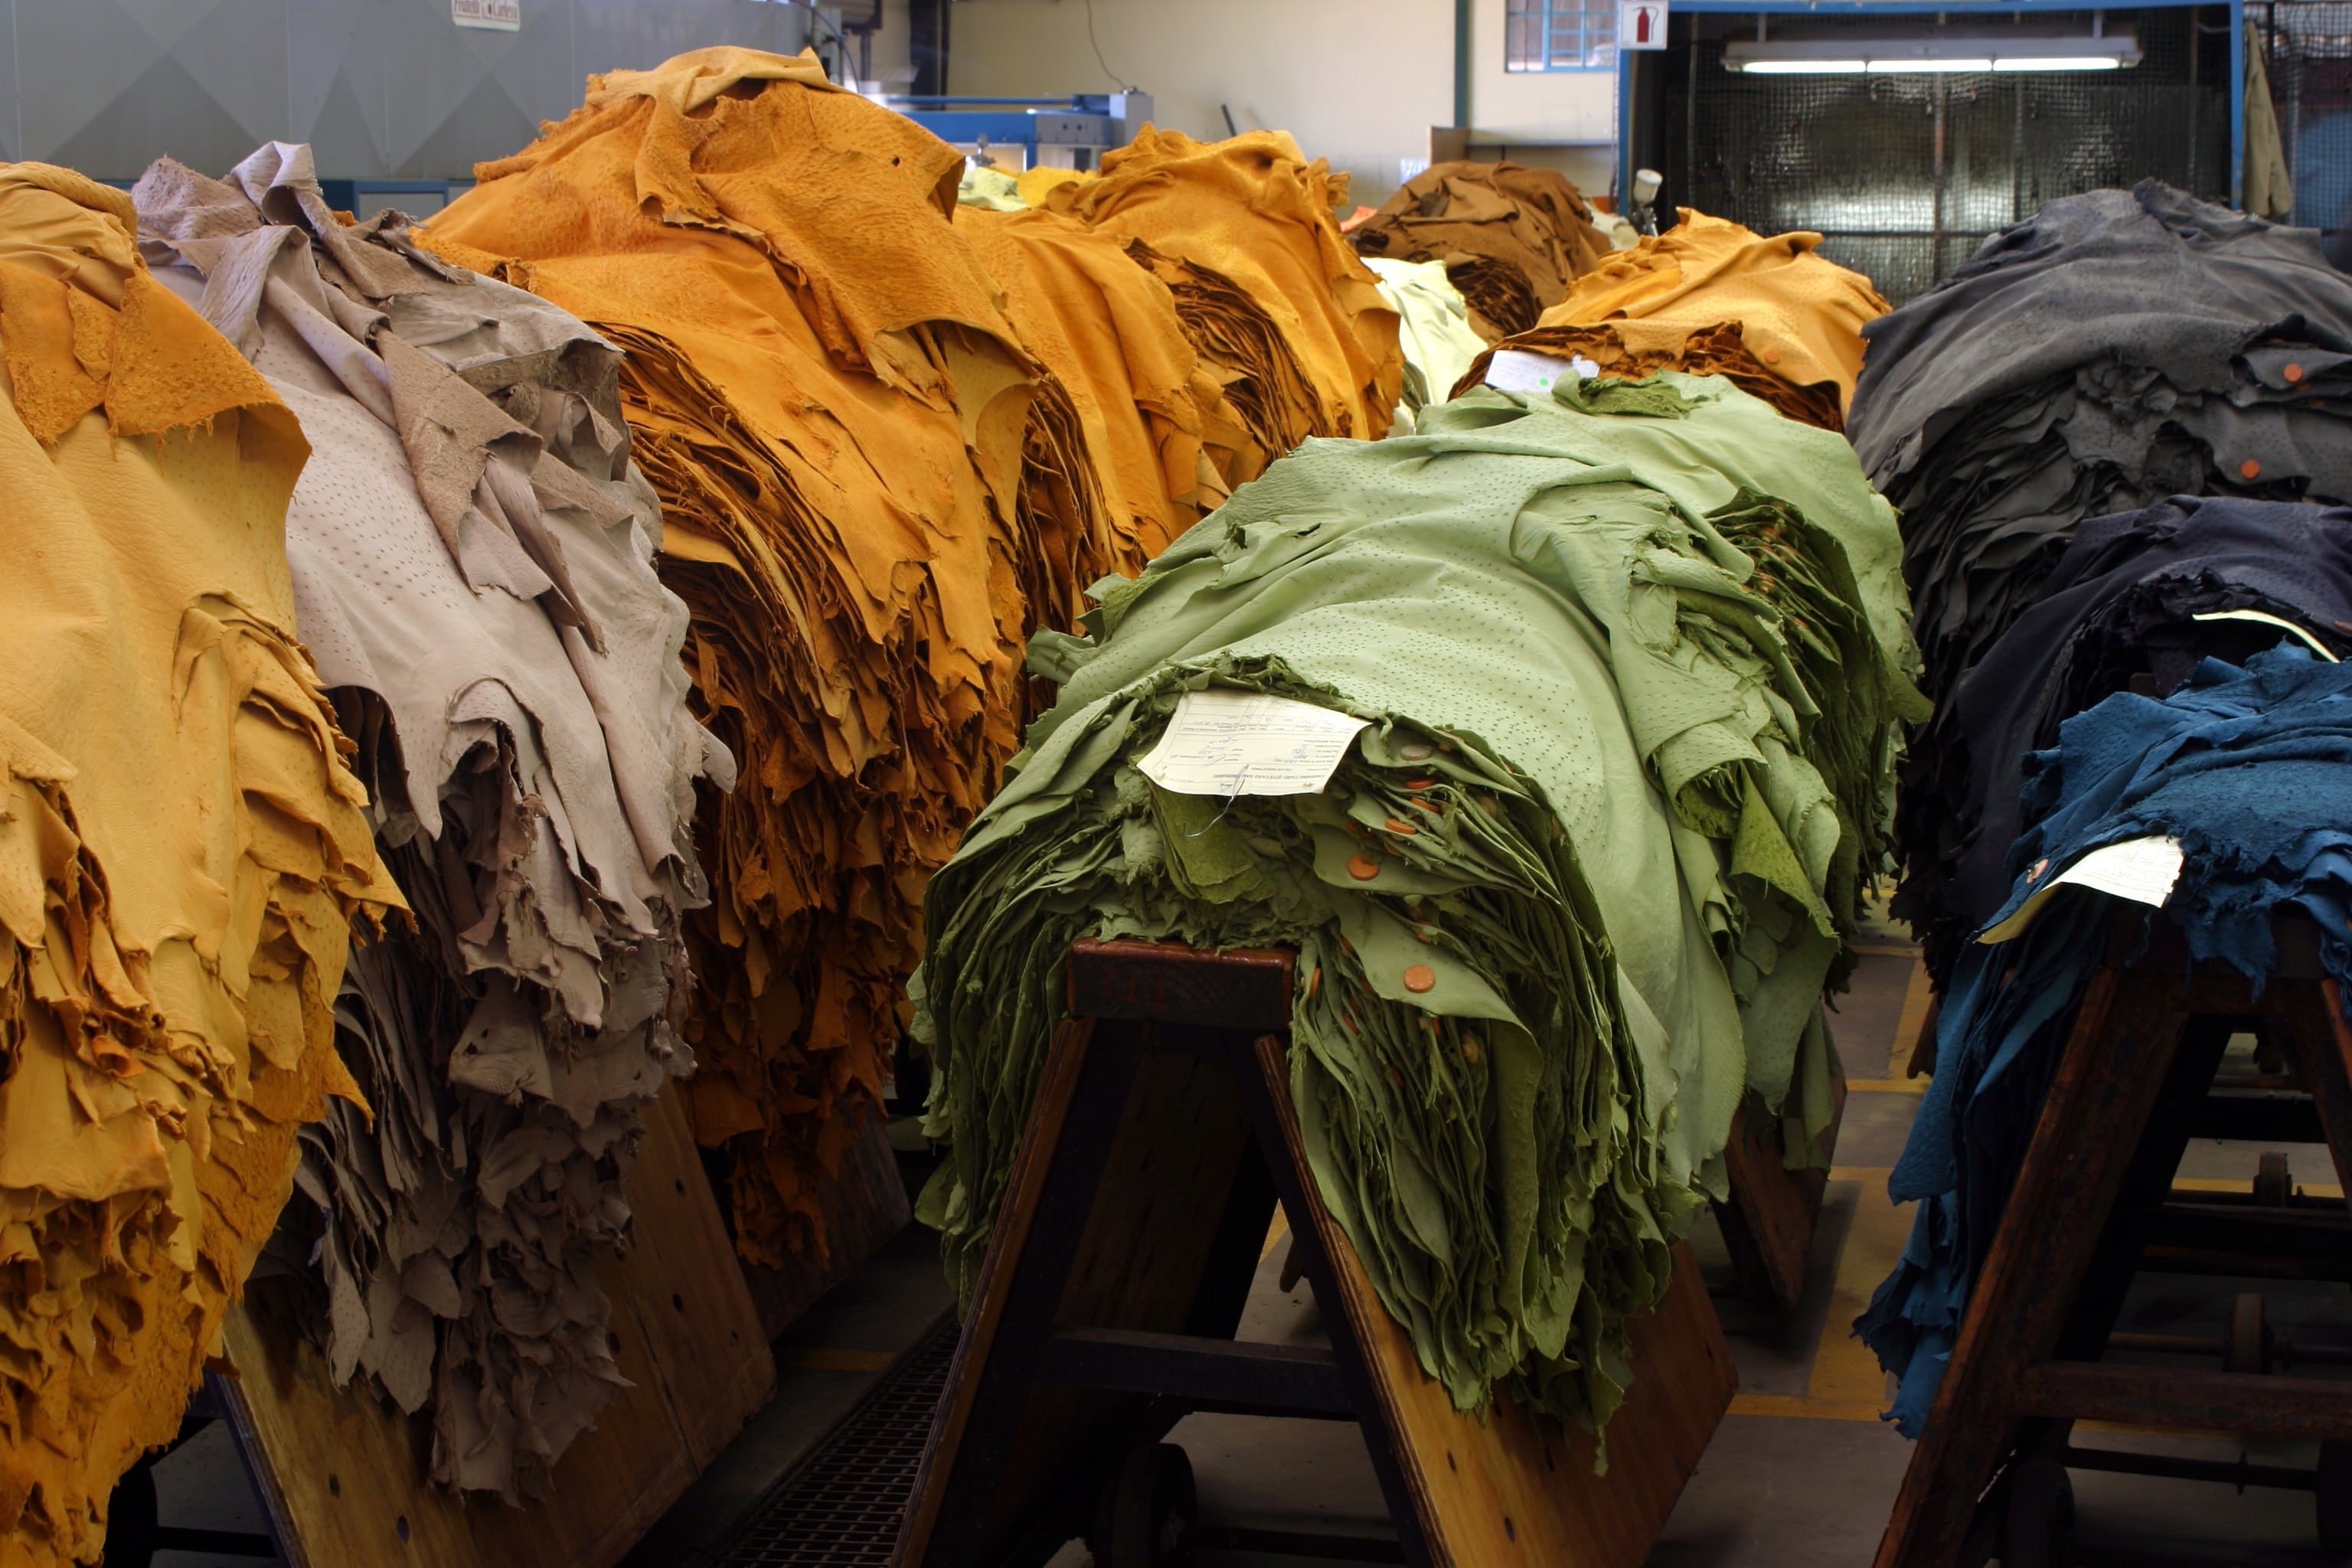 Leather hides during manufacturing